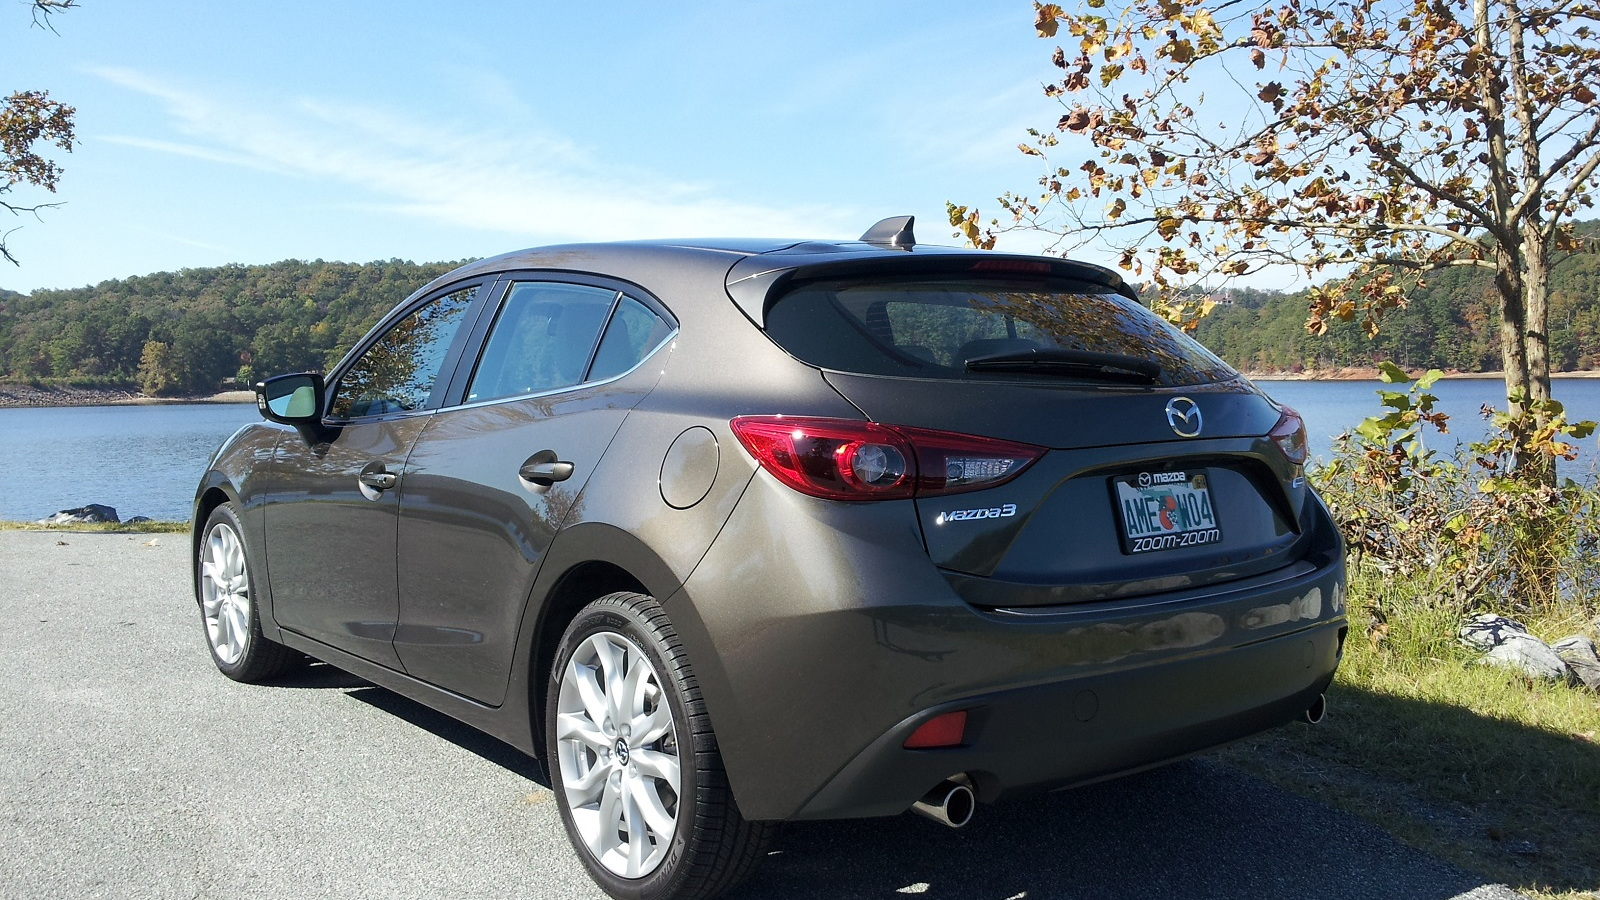 2014 Mazda 3, test drive, Atlanta region, Oct 2013